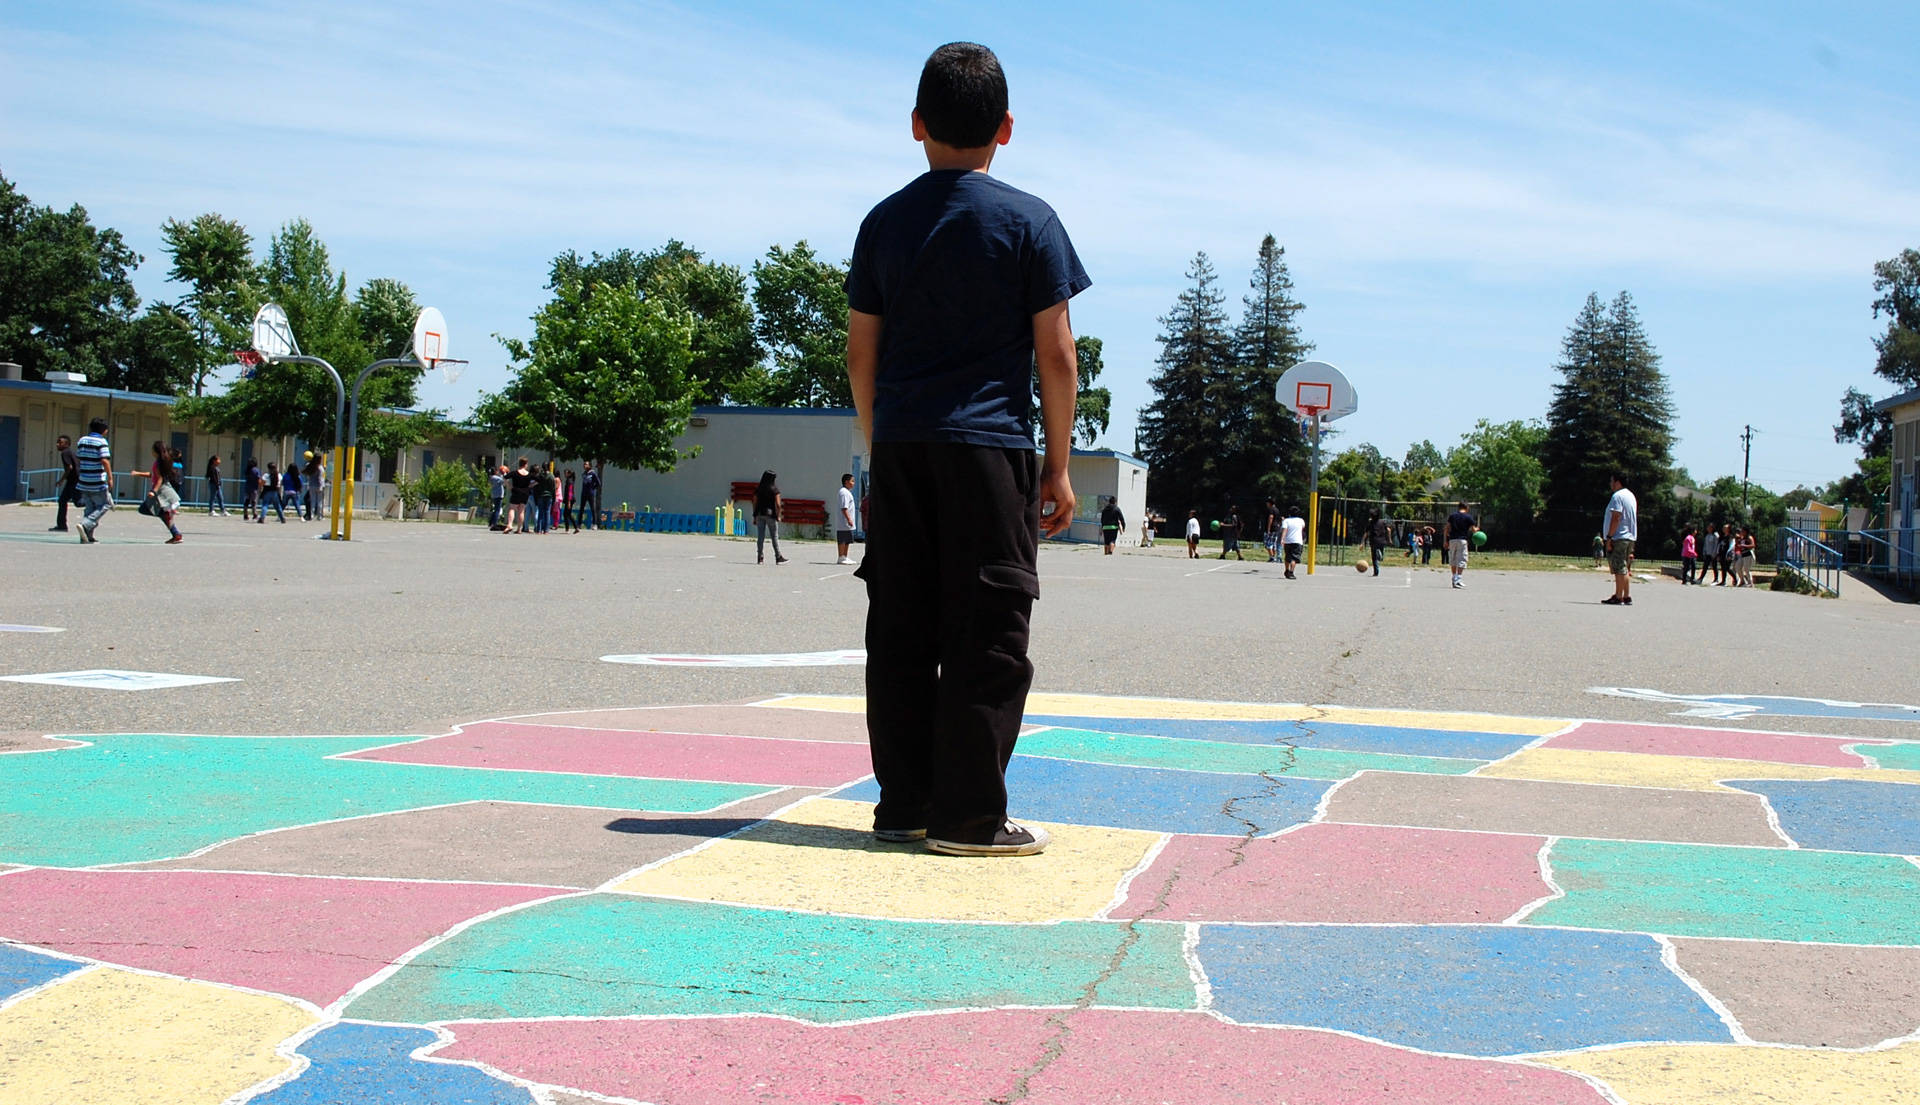 Is Extra Funding Helping English Learners? One School's Contentious Decision